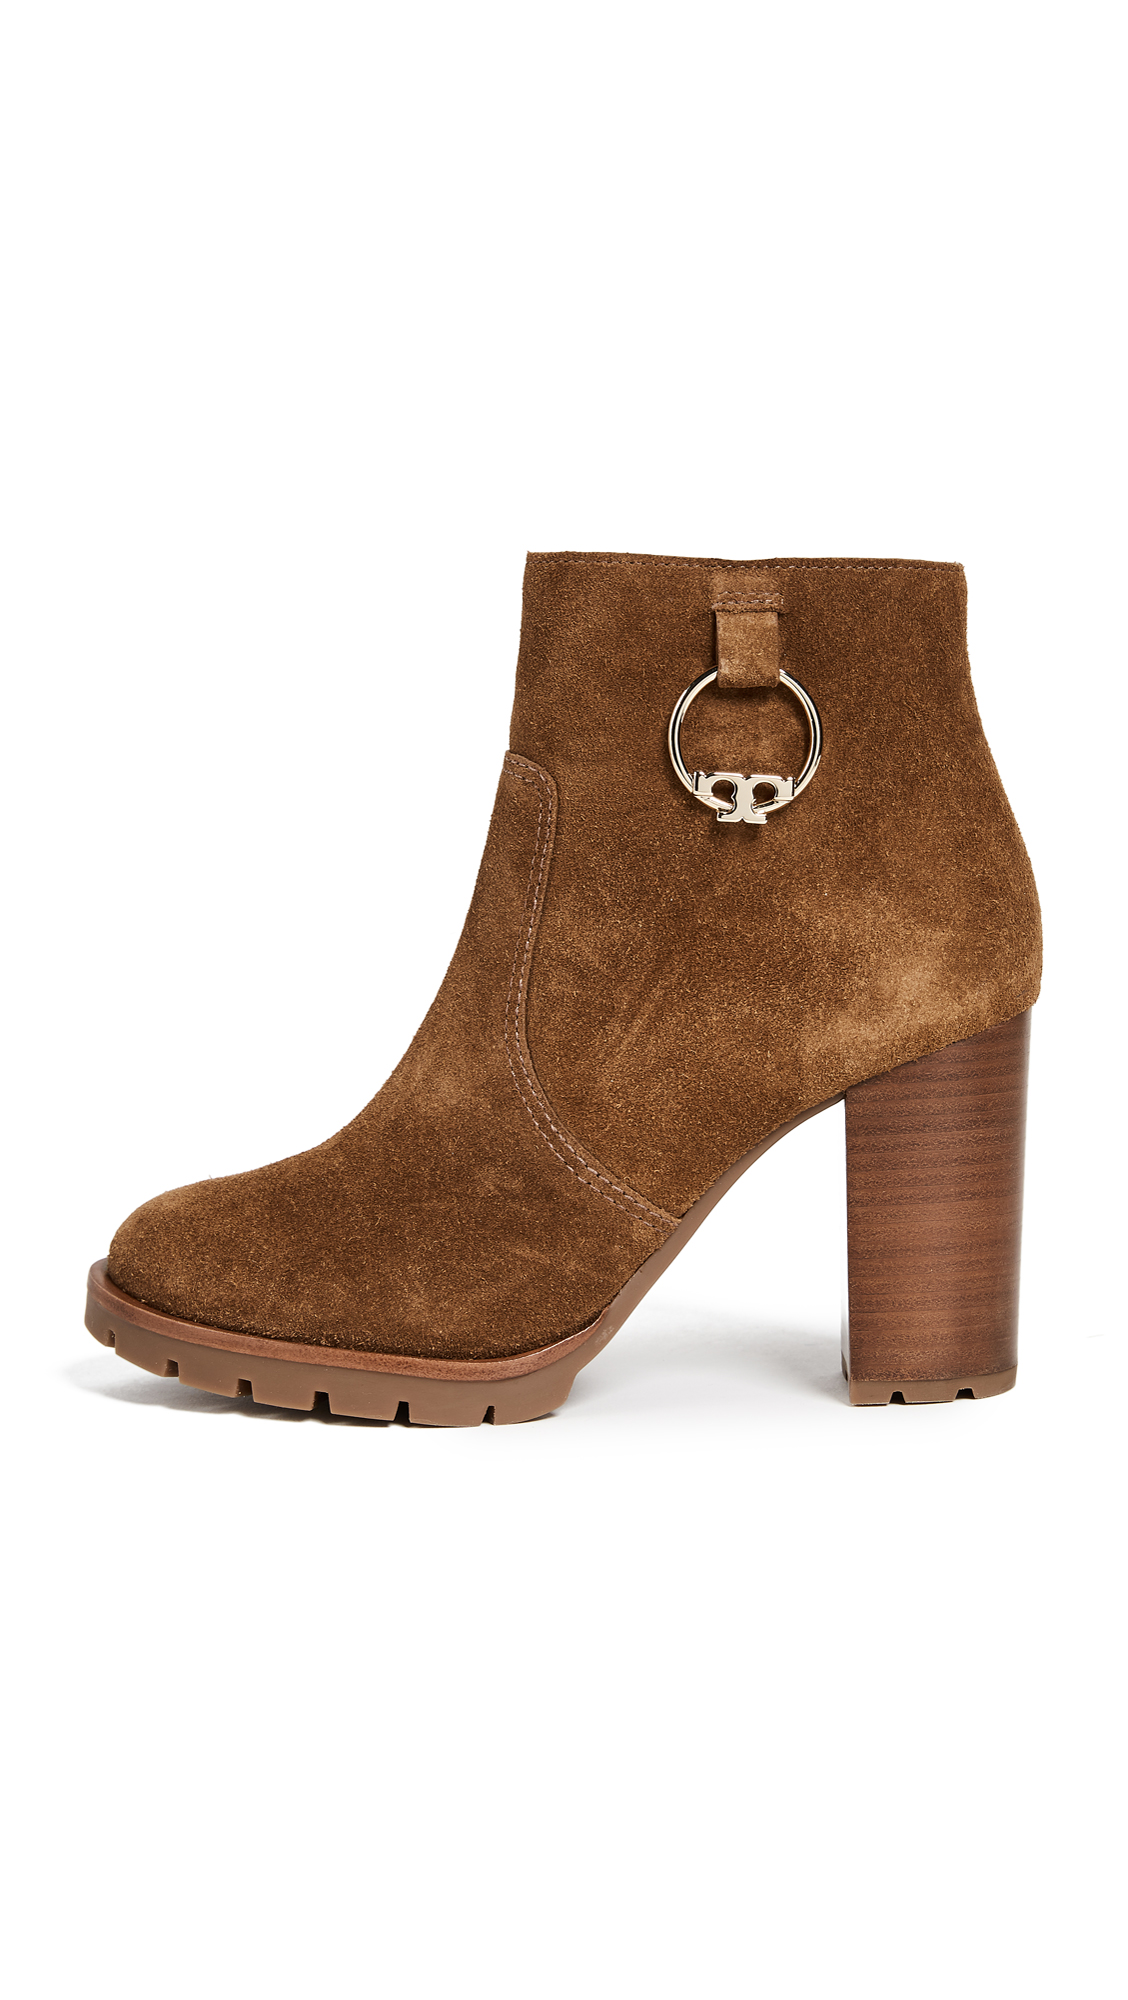 Tory Burch Sofia 80MM Lug Sole Booties - Festival Brown